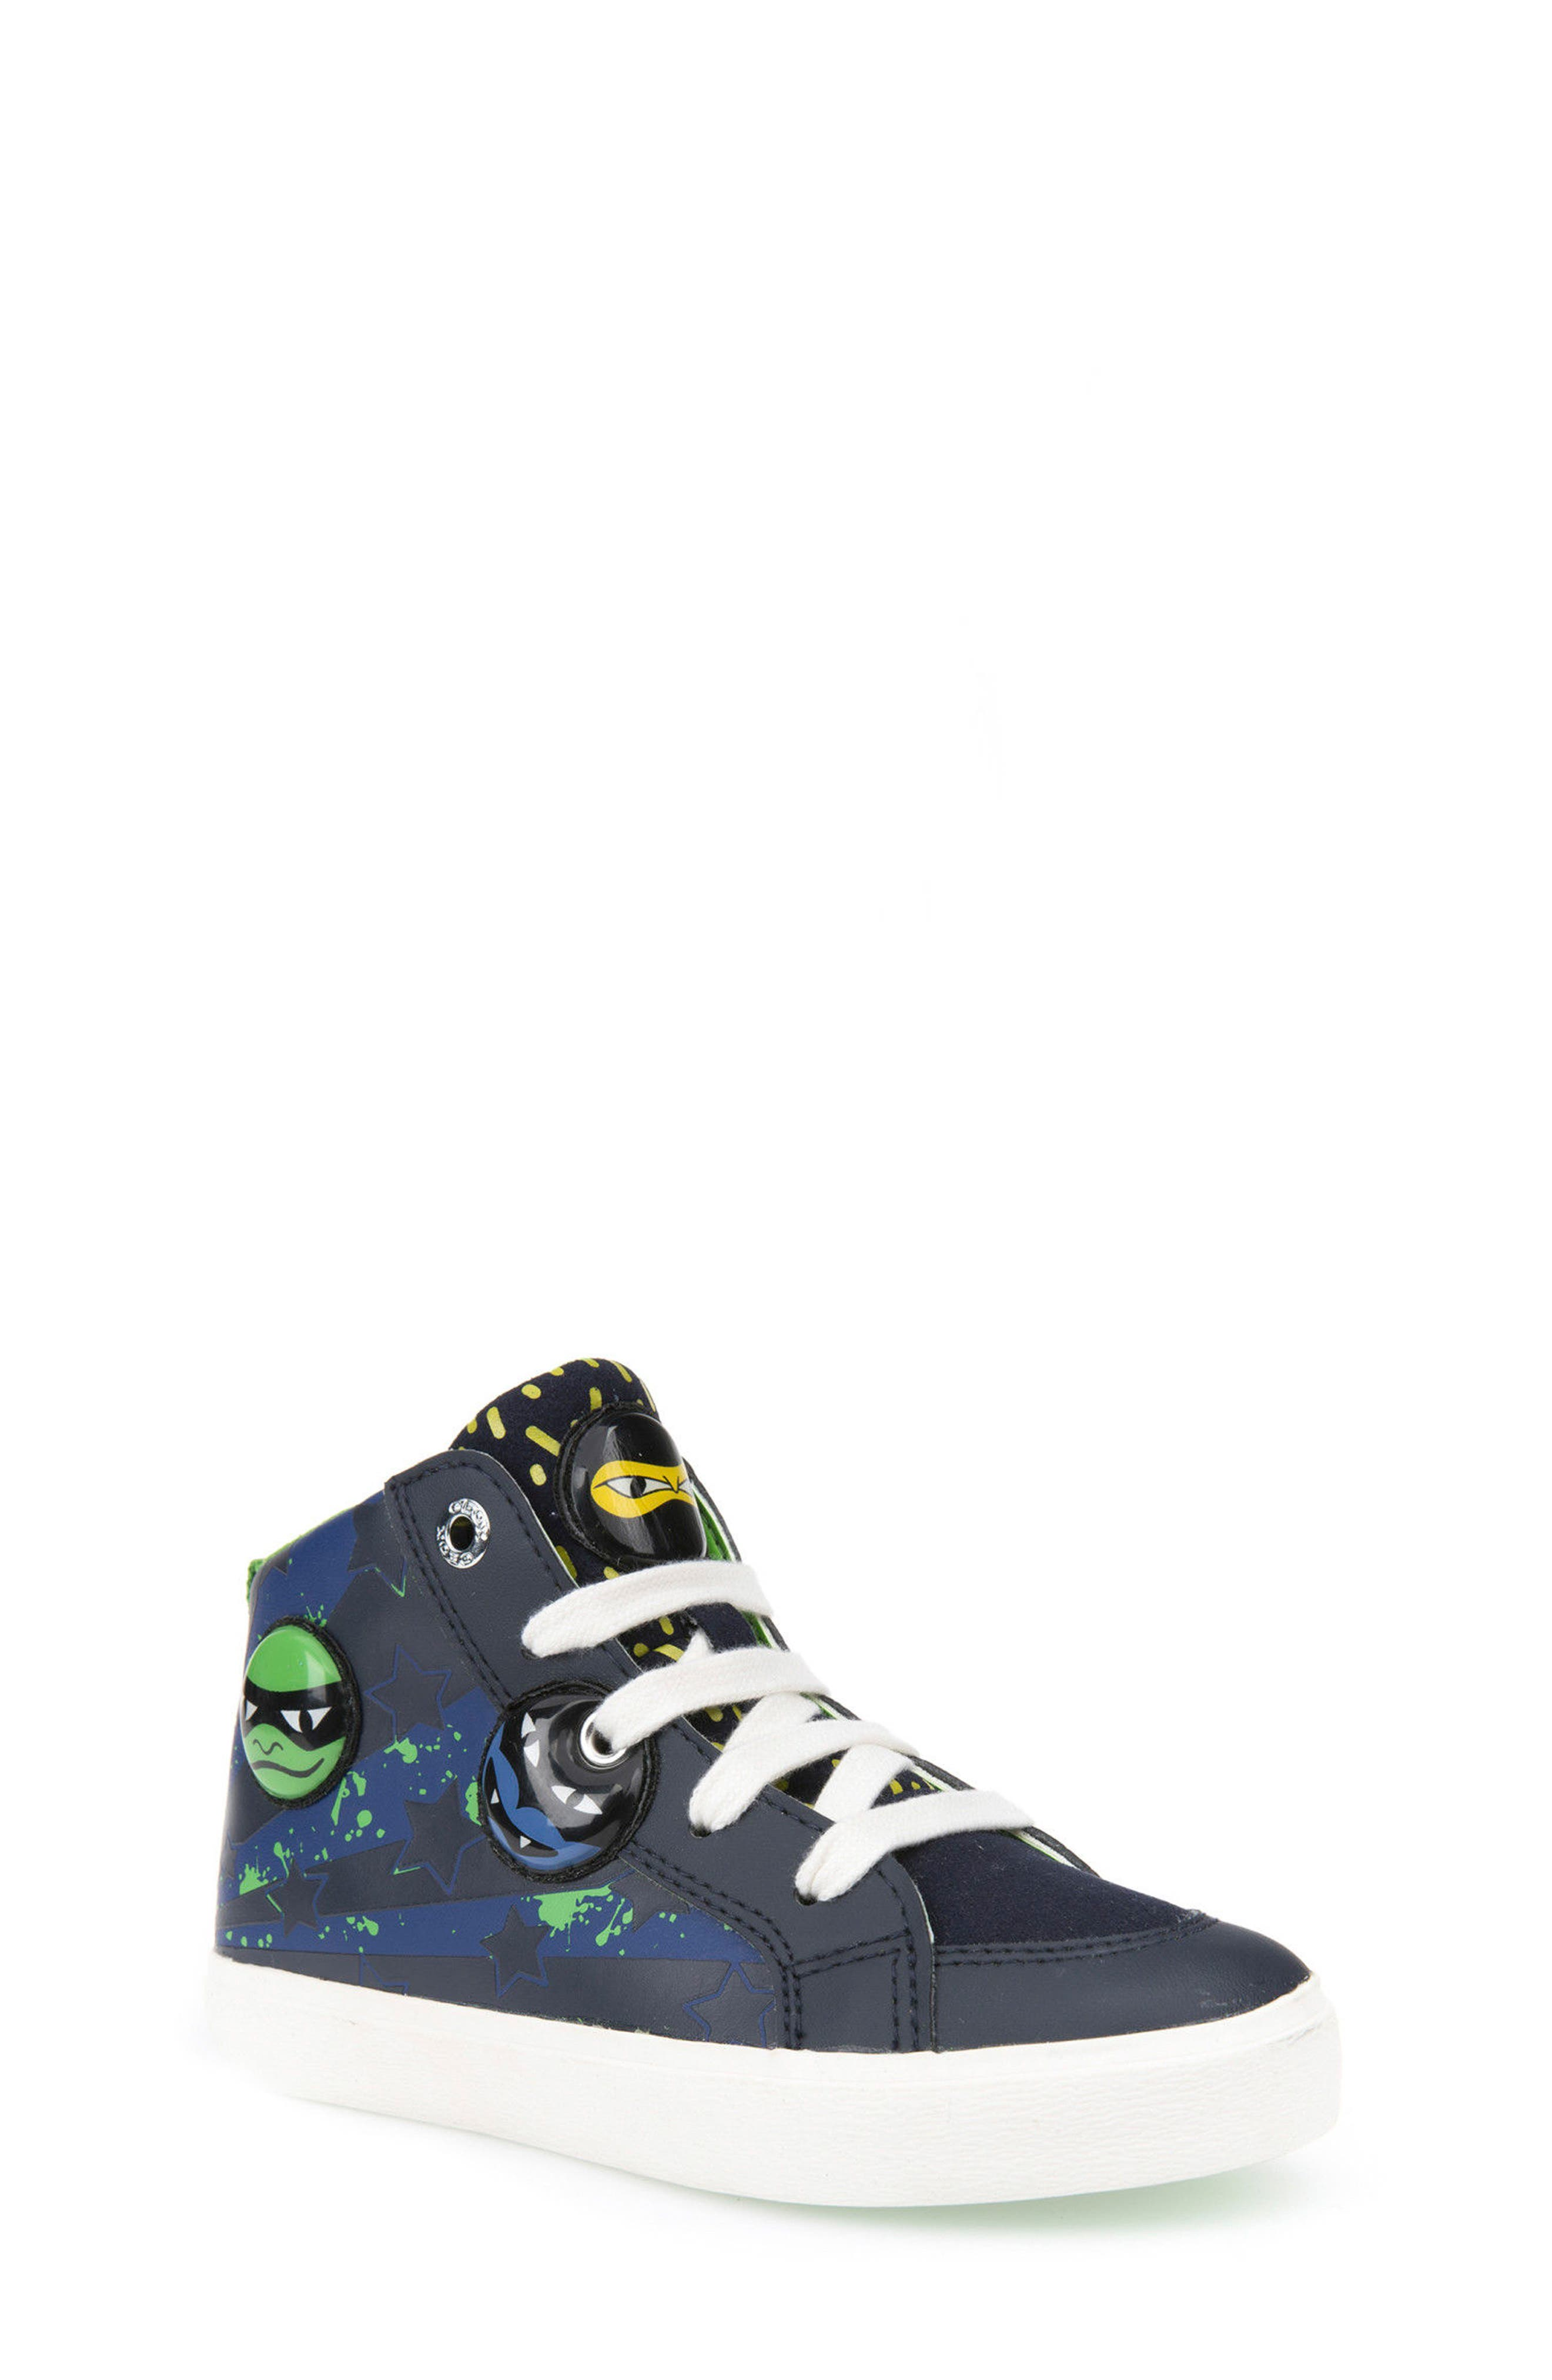 GEOX Kiwi High Top Sneaker